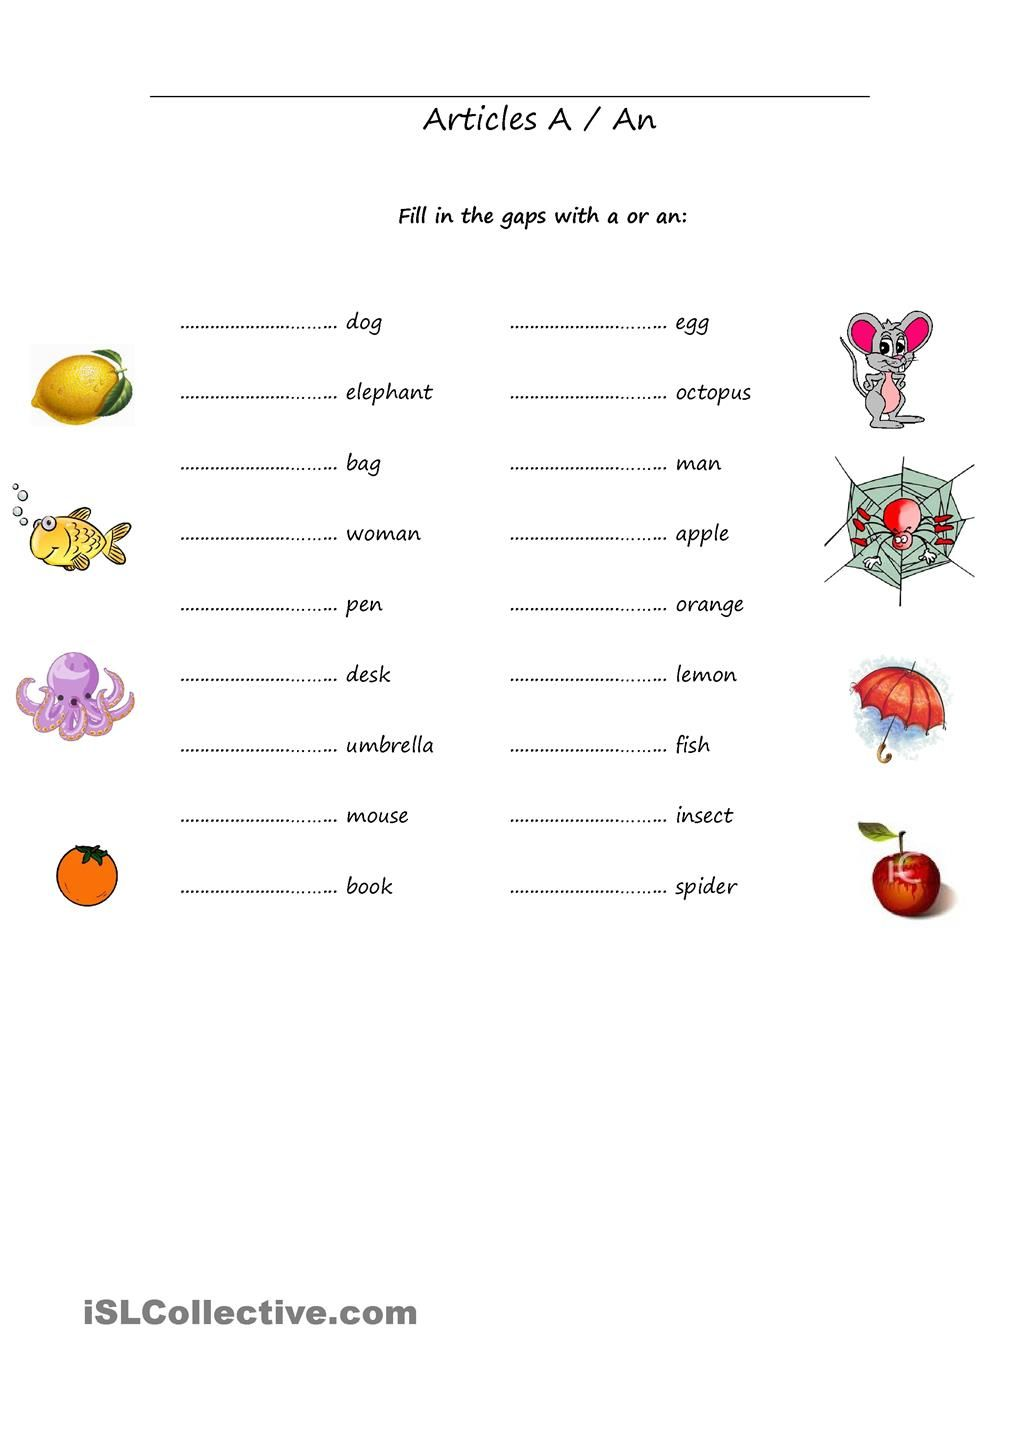 worksheet Articles Worksheet For Kids grade 1 grammar lesson 6 articles a and an places to visit printable